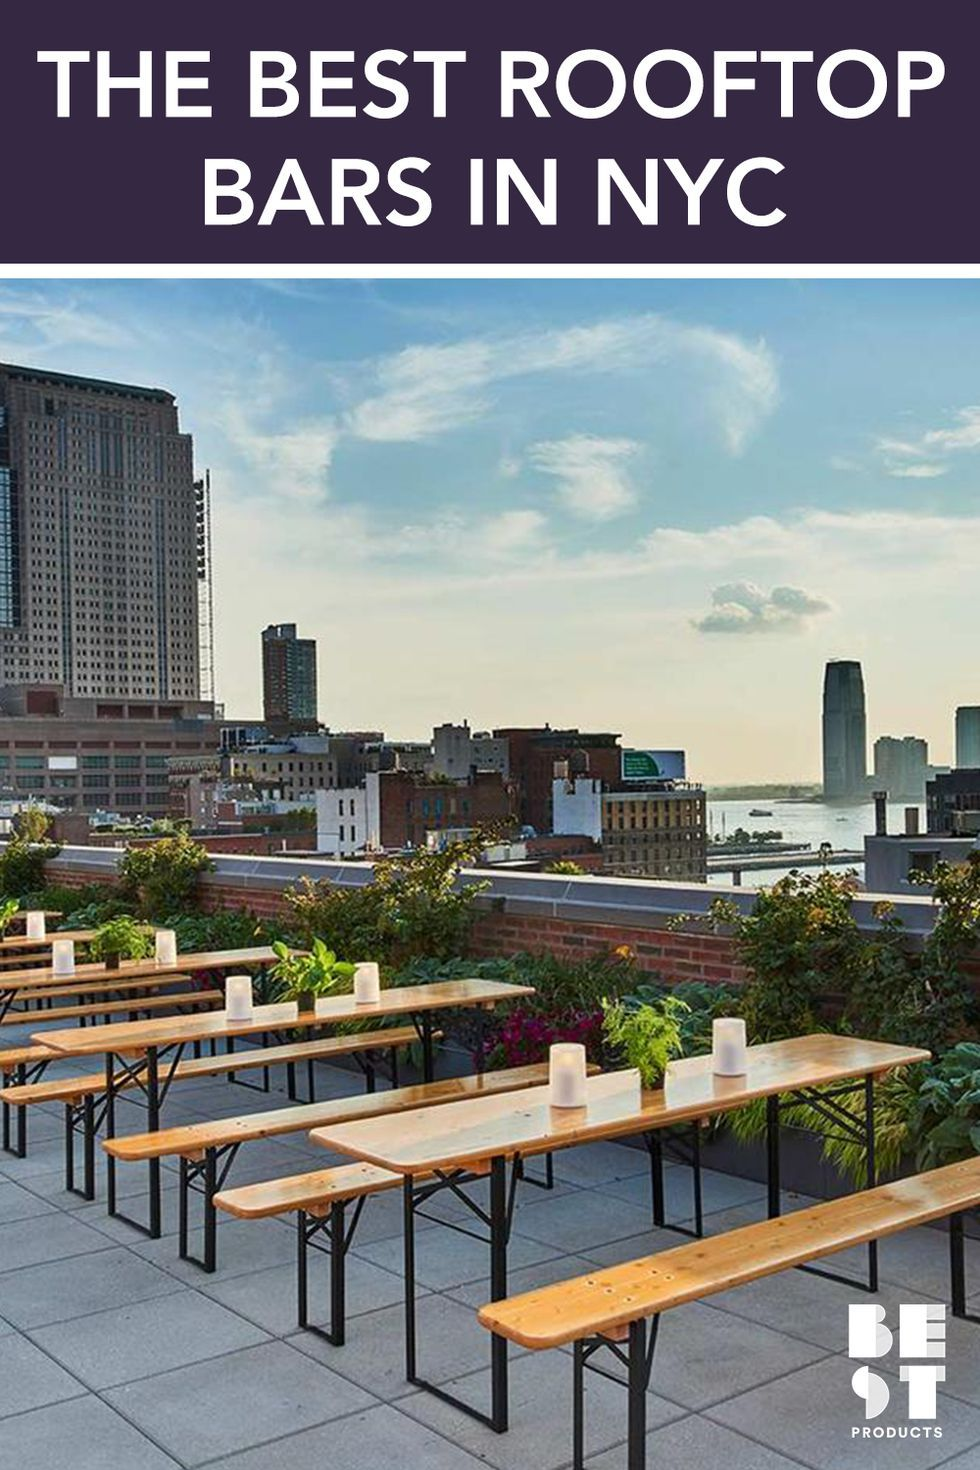 You Ve Got To See The Views From These Rooftop Bars In Nyc Rooftop Bars Nyc Best Rooftop Bars Rooftop Bar